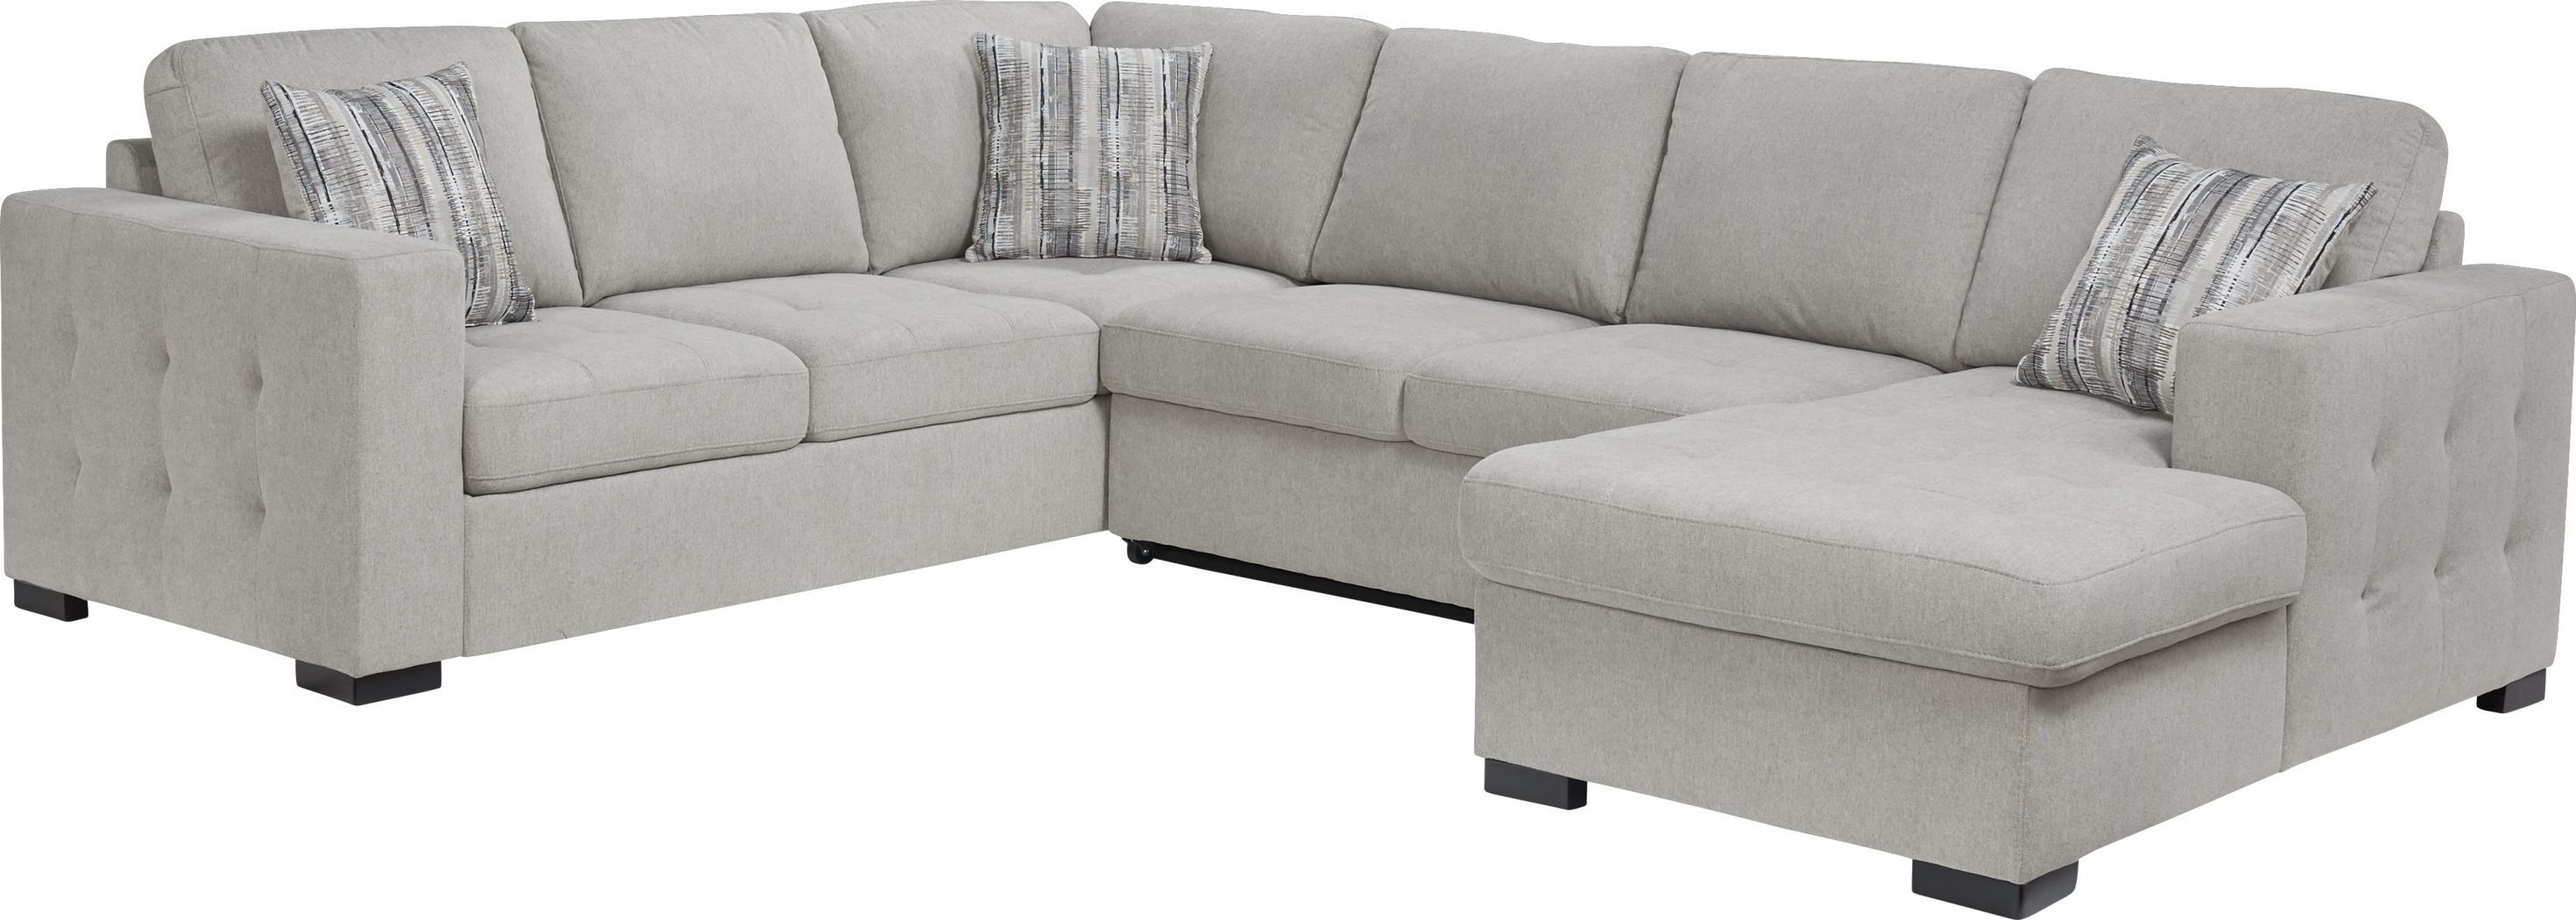 Best Angelino Heights Gray 3 Pc Sleeper Sectional In 2020 400 x 300